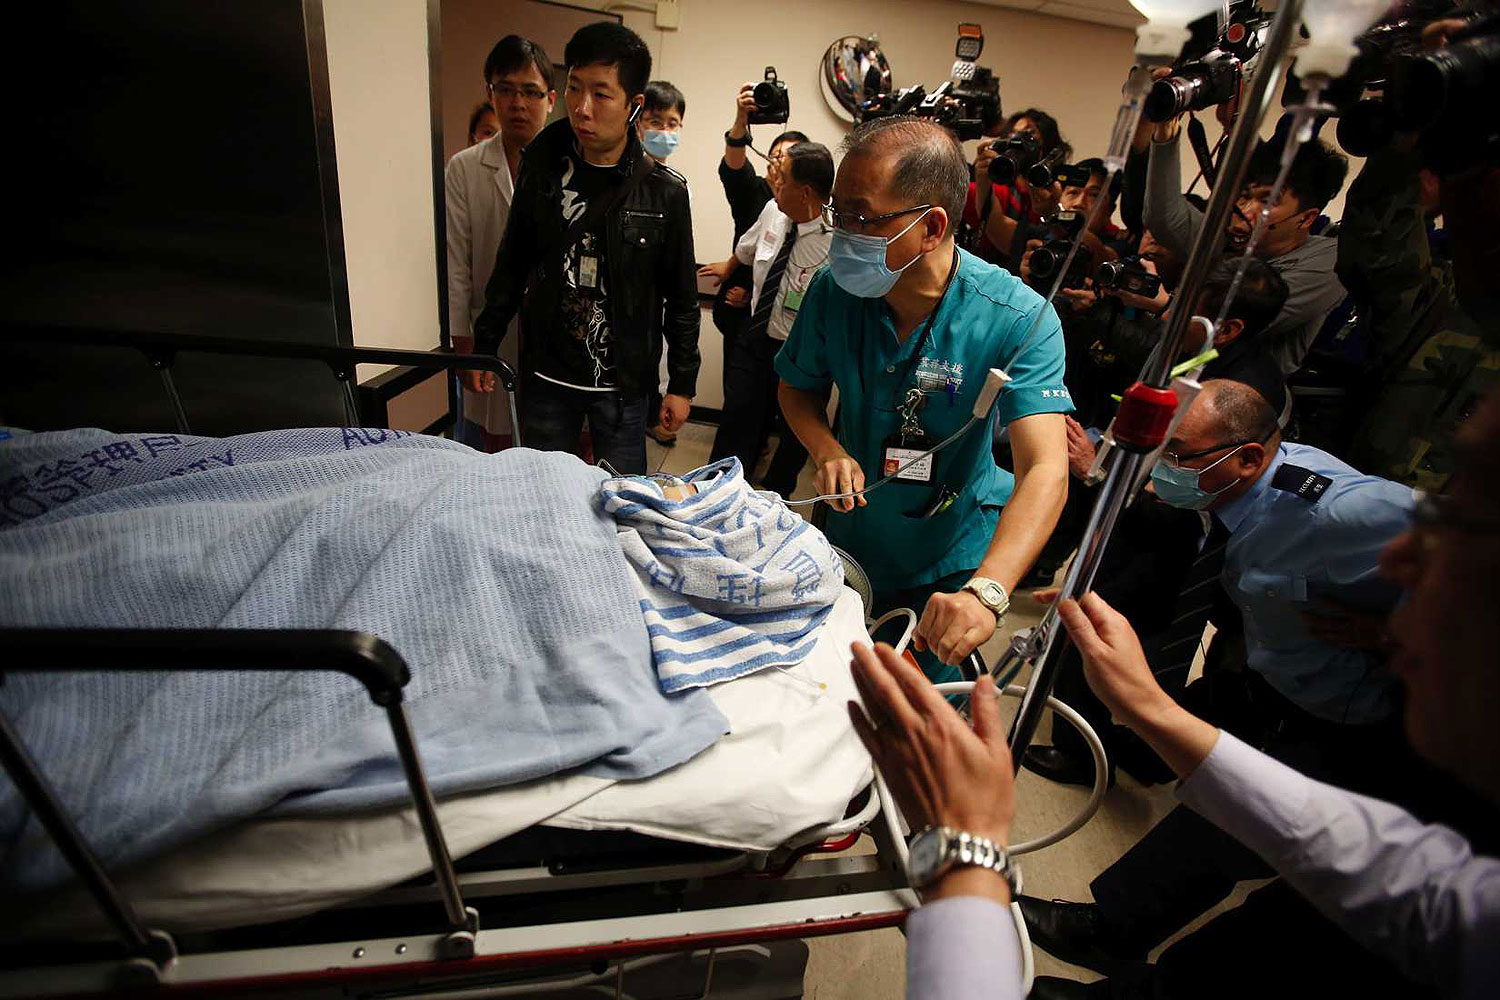 Former Ming Pao chief editor Kevin Lau Chun-to is wheeled into the operation theatre at a hospital in Hong Kong Feb. 26, 2014